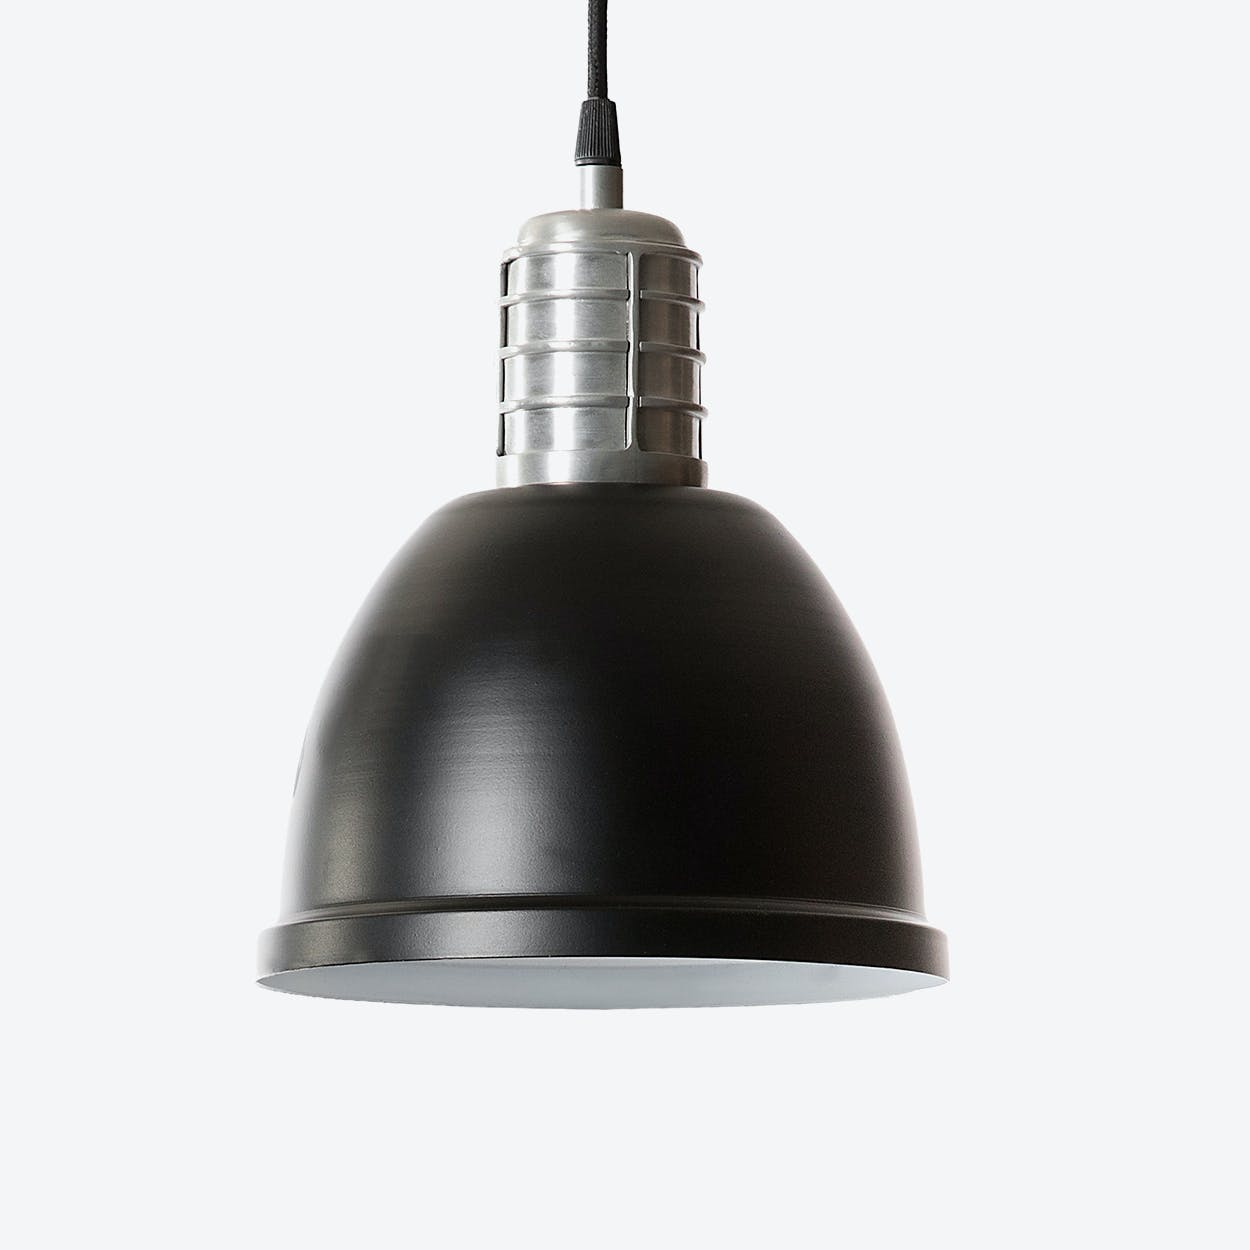 "Pendant Light ""Casdock"" in Black"